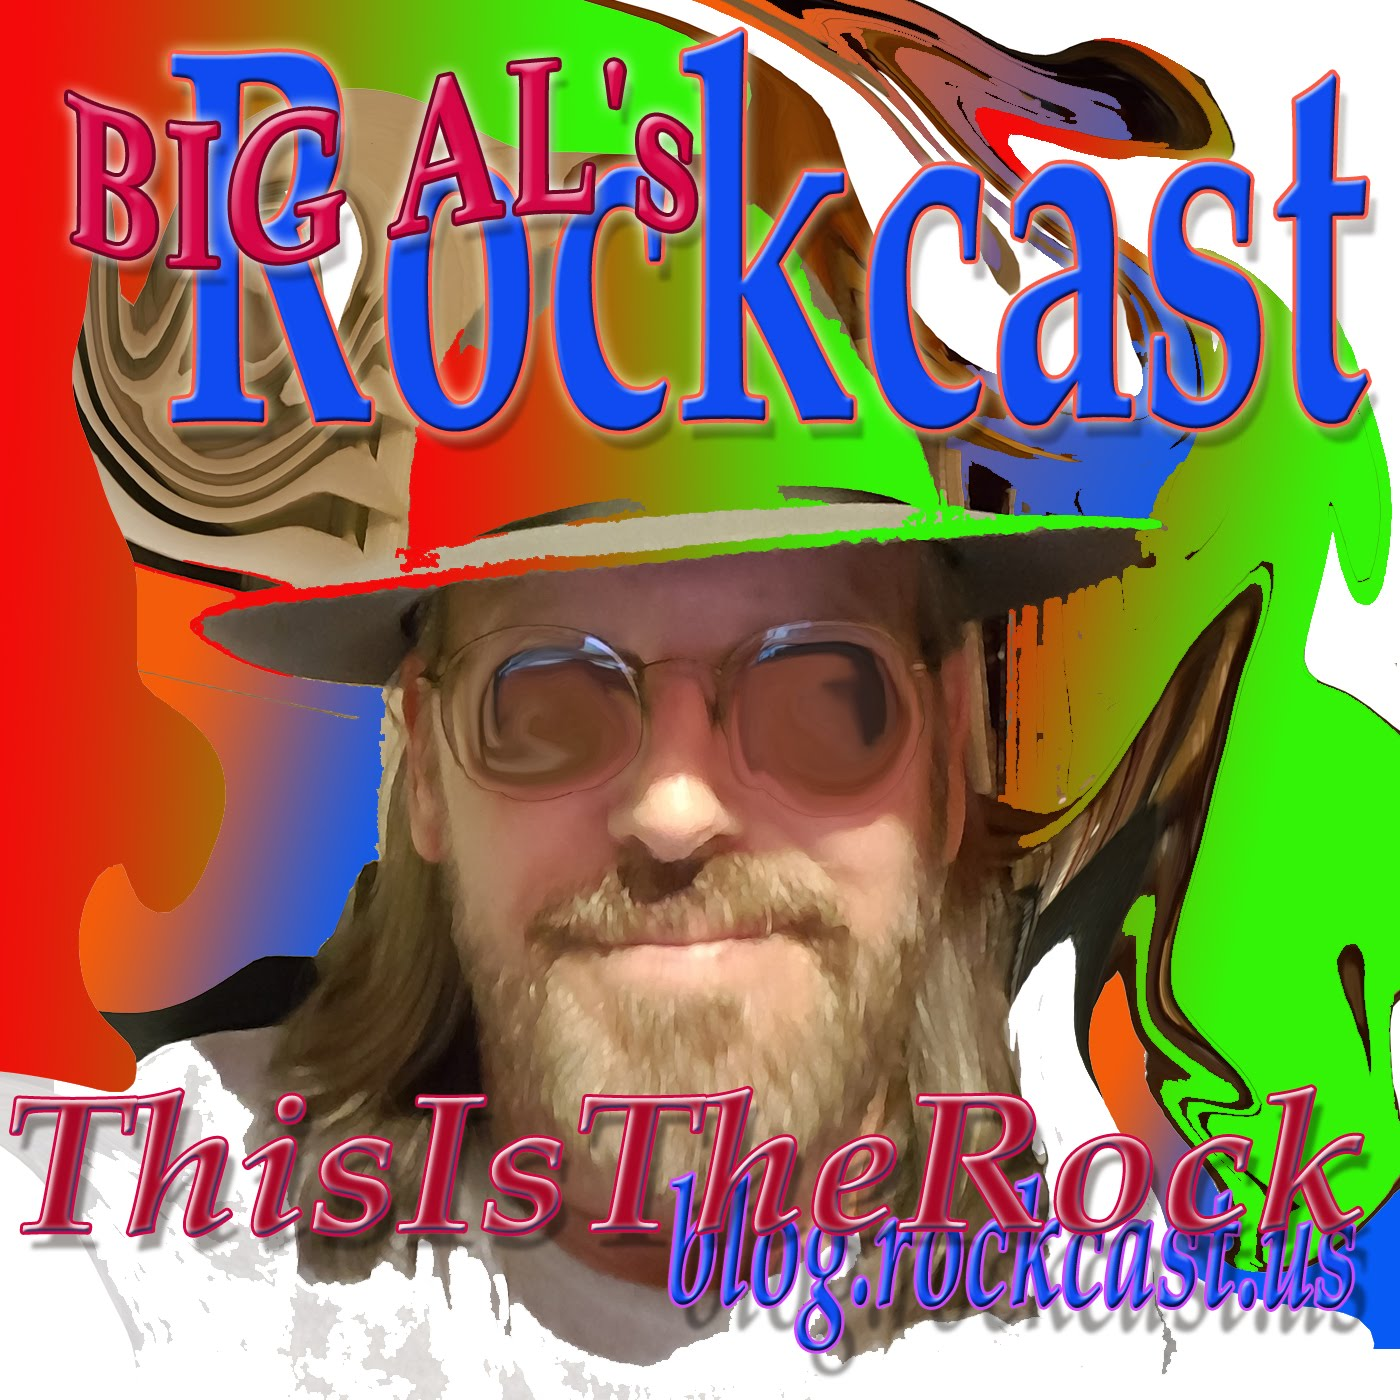 Send Mail to: bigal@rockcast.us